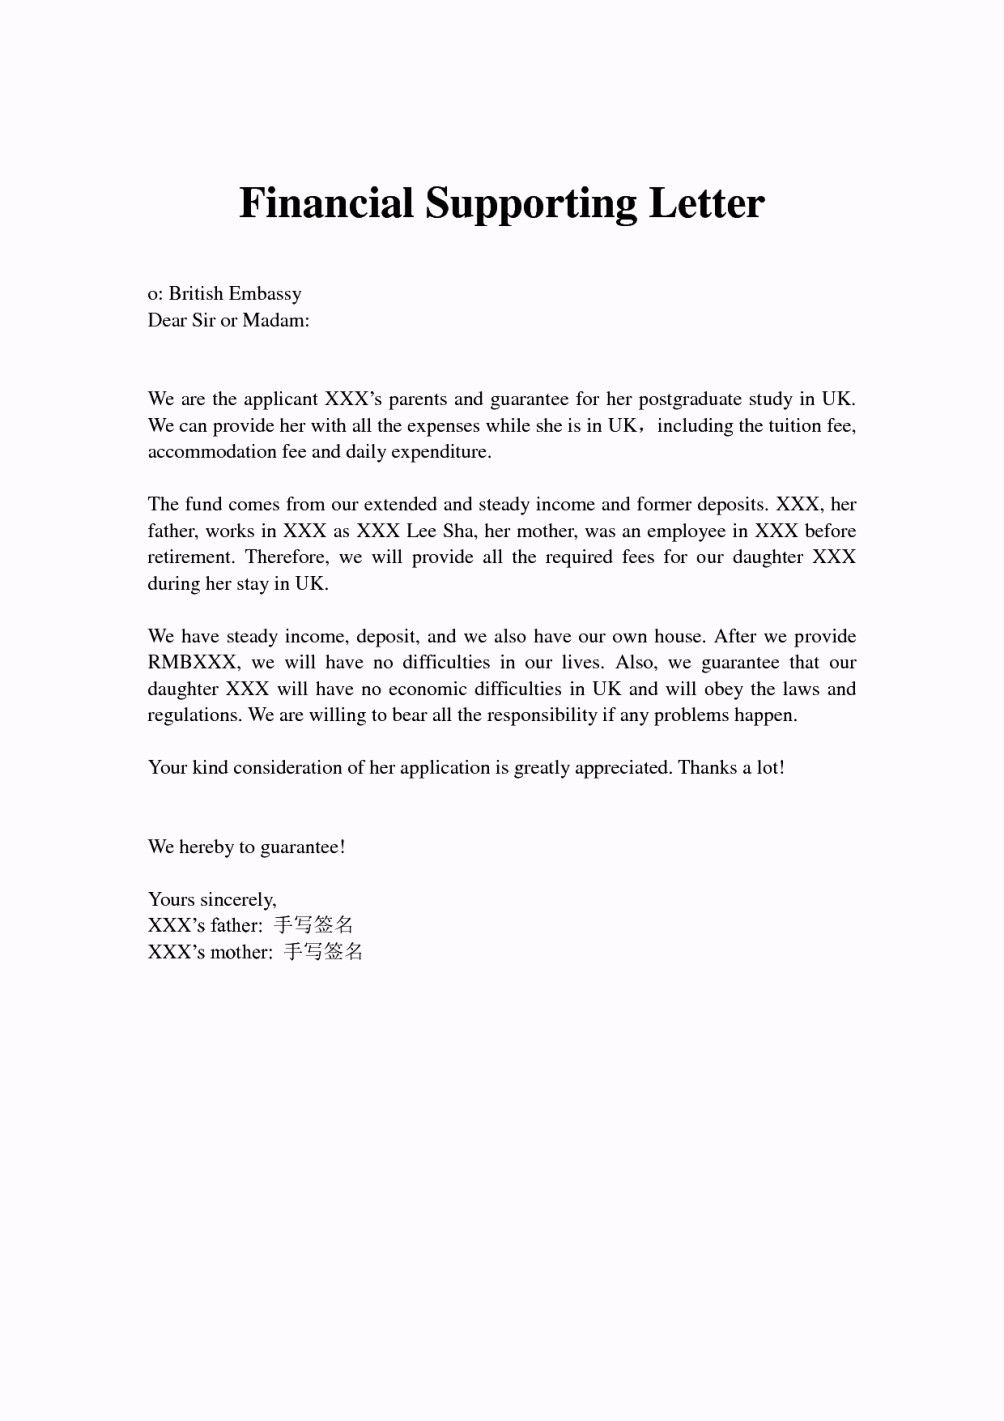 Financial Support Letter From Parents Letter Letter To